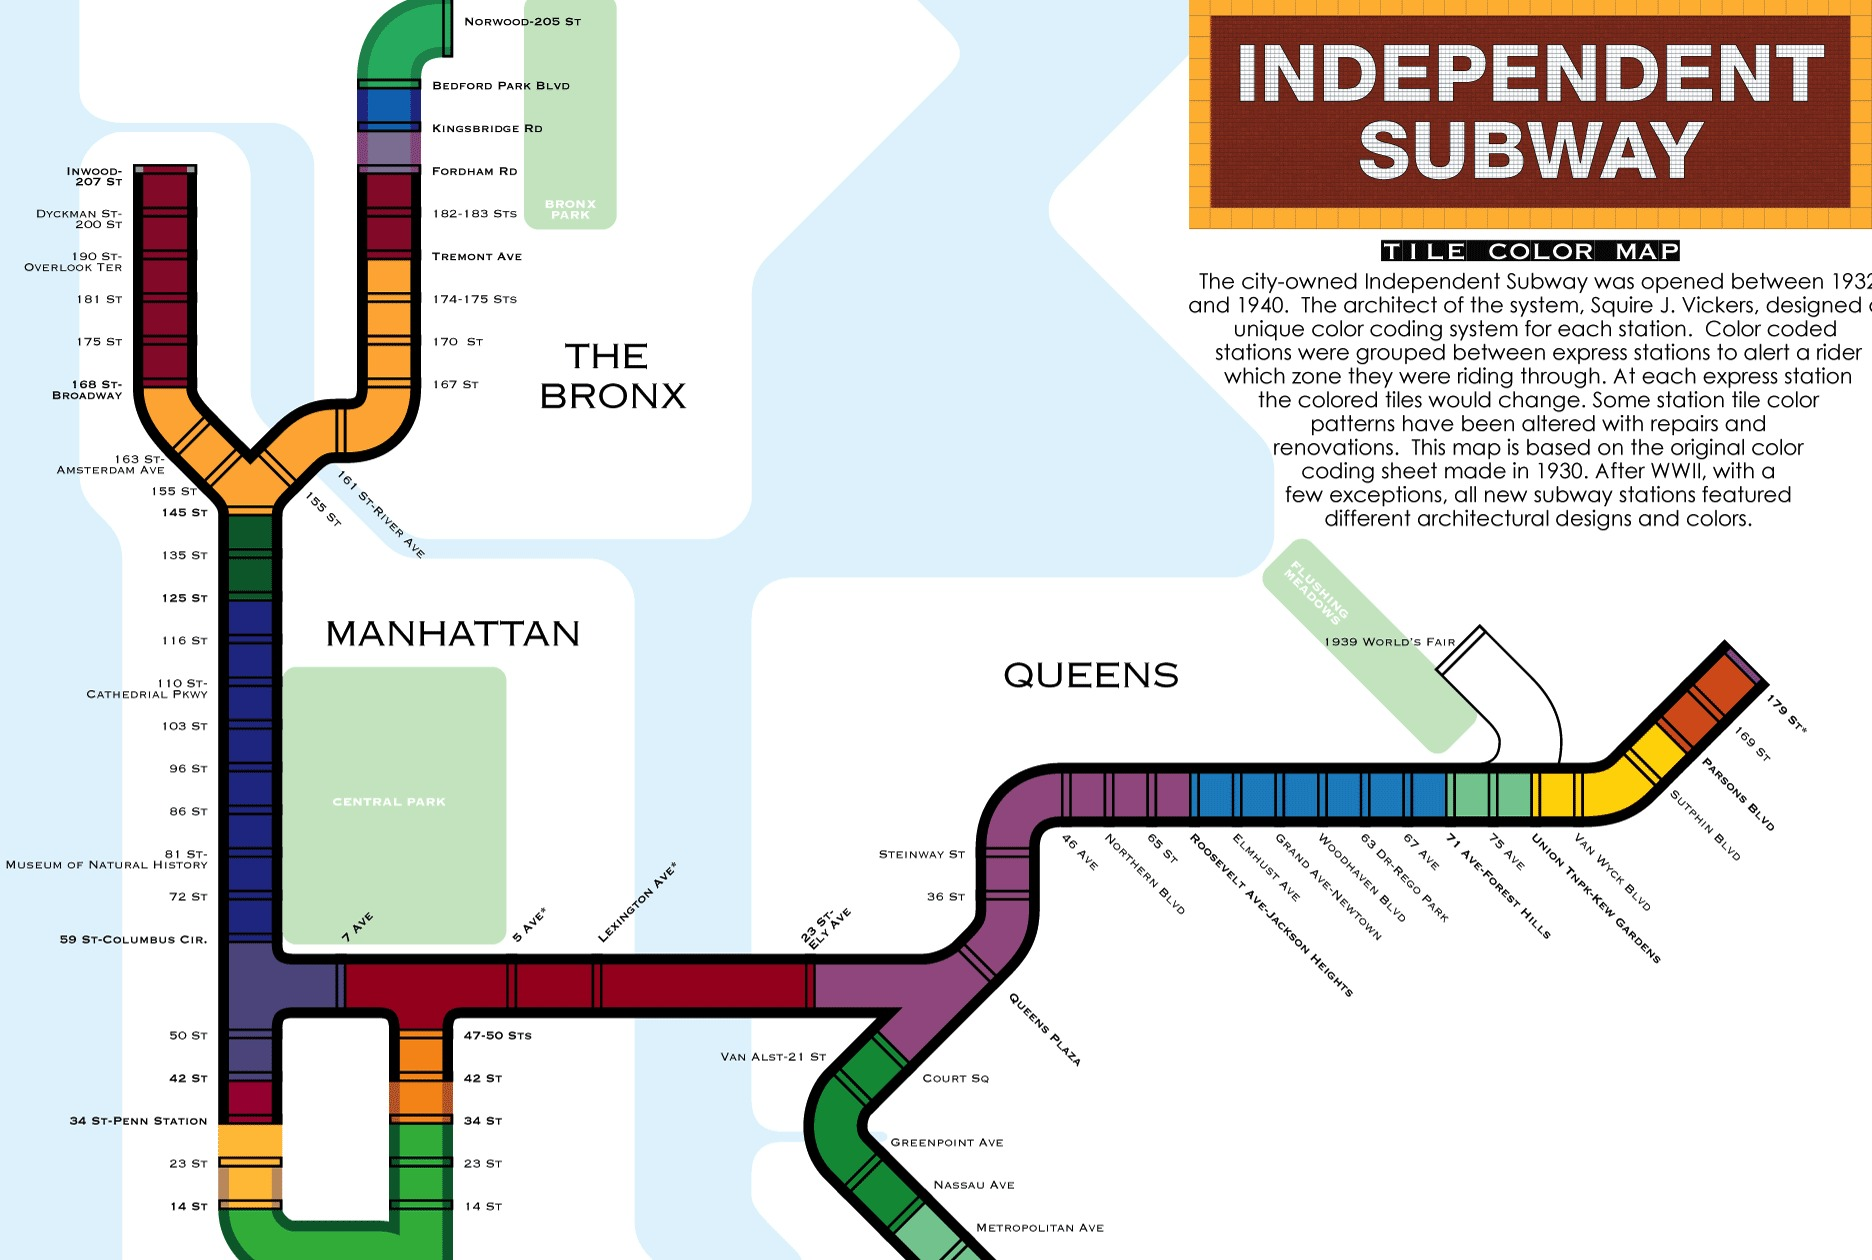 this map explains the historic tile color system used in nyc subway stations